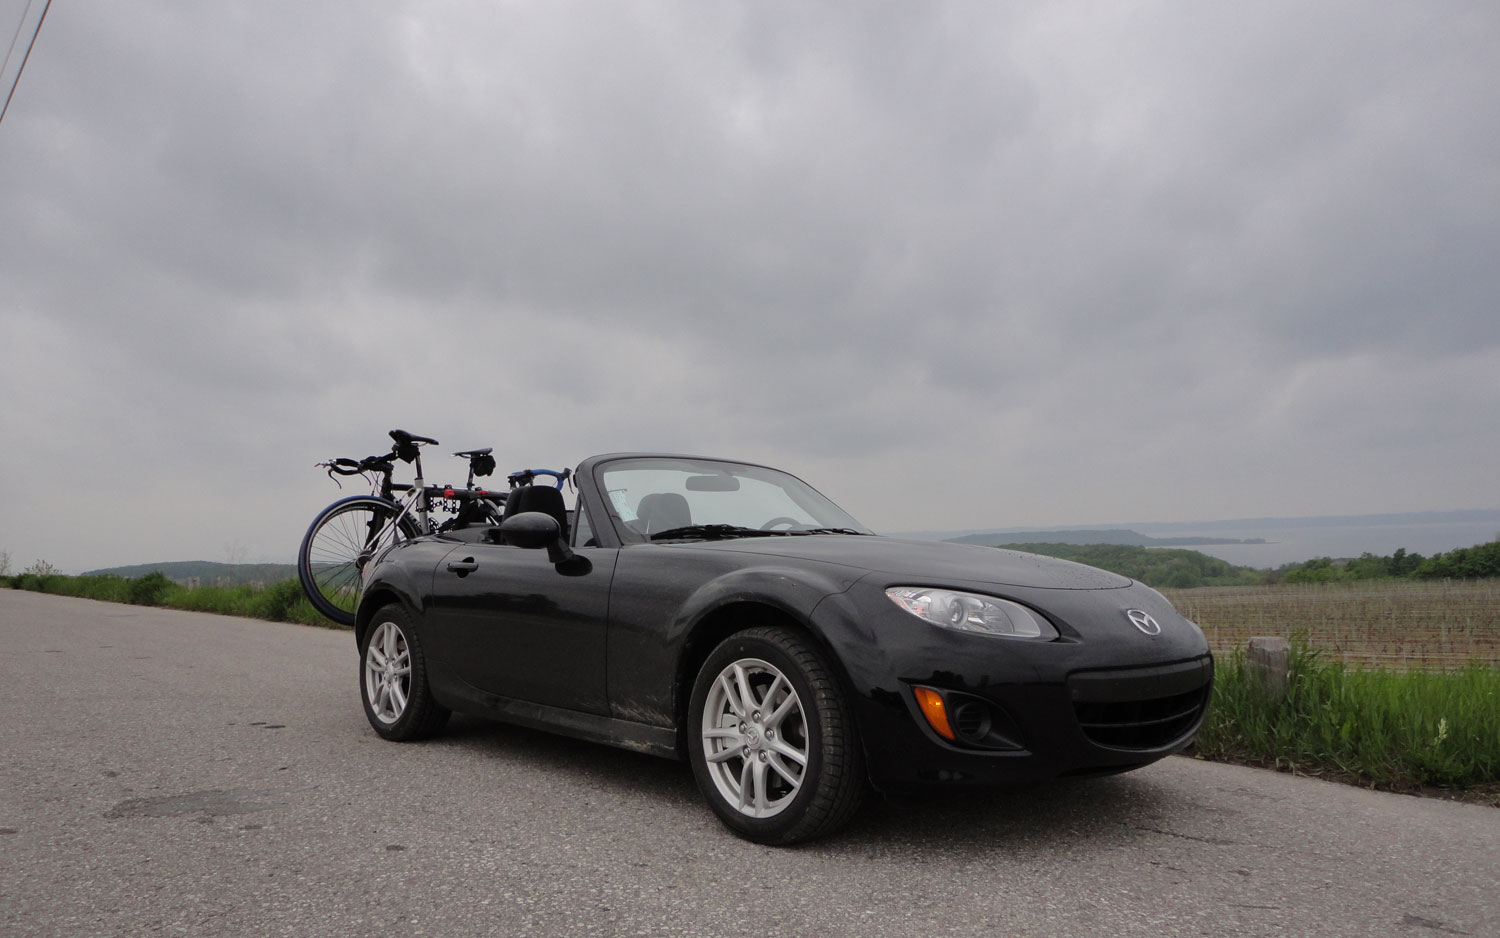 2011 Mazda MX-5 Miata - The Miata Summer - Automobile Magazine